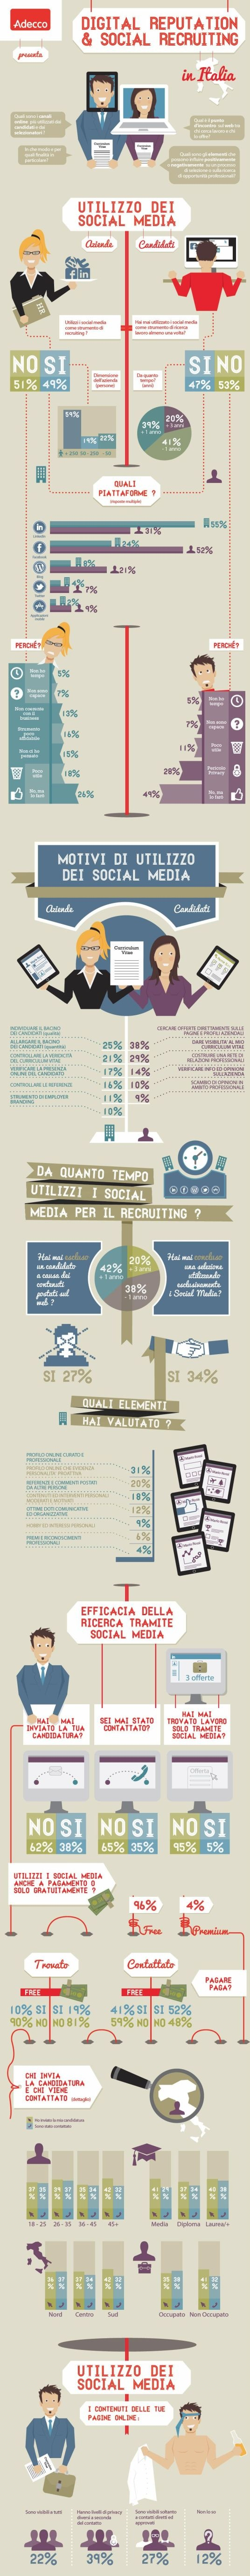 Digital Reputation e Social Recruiting in Italia #infographic #socialmedia #recruiting